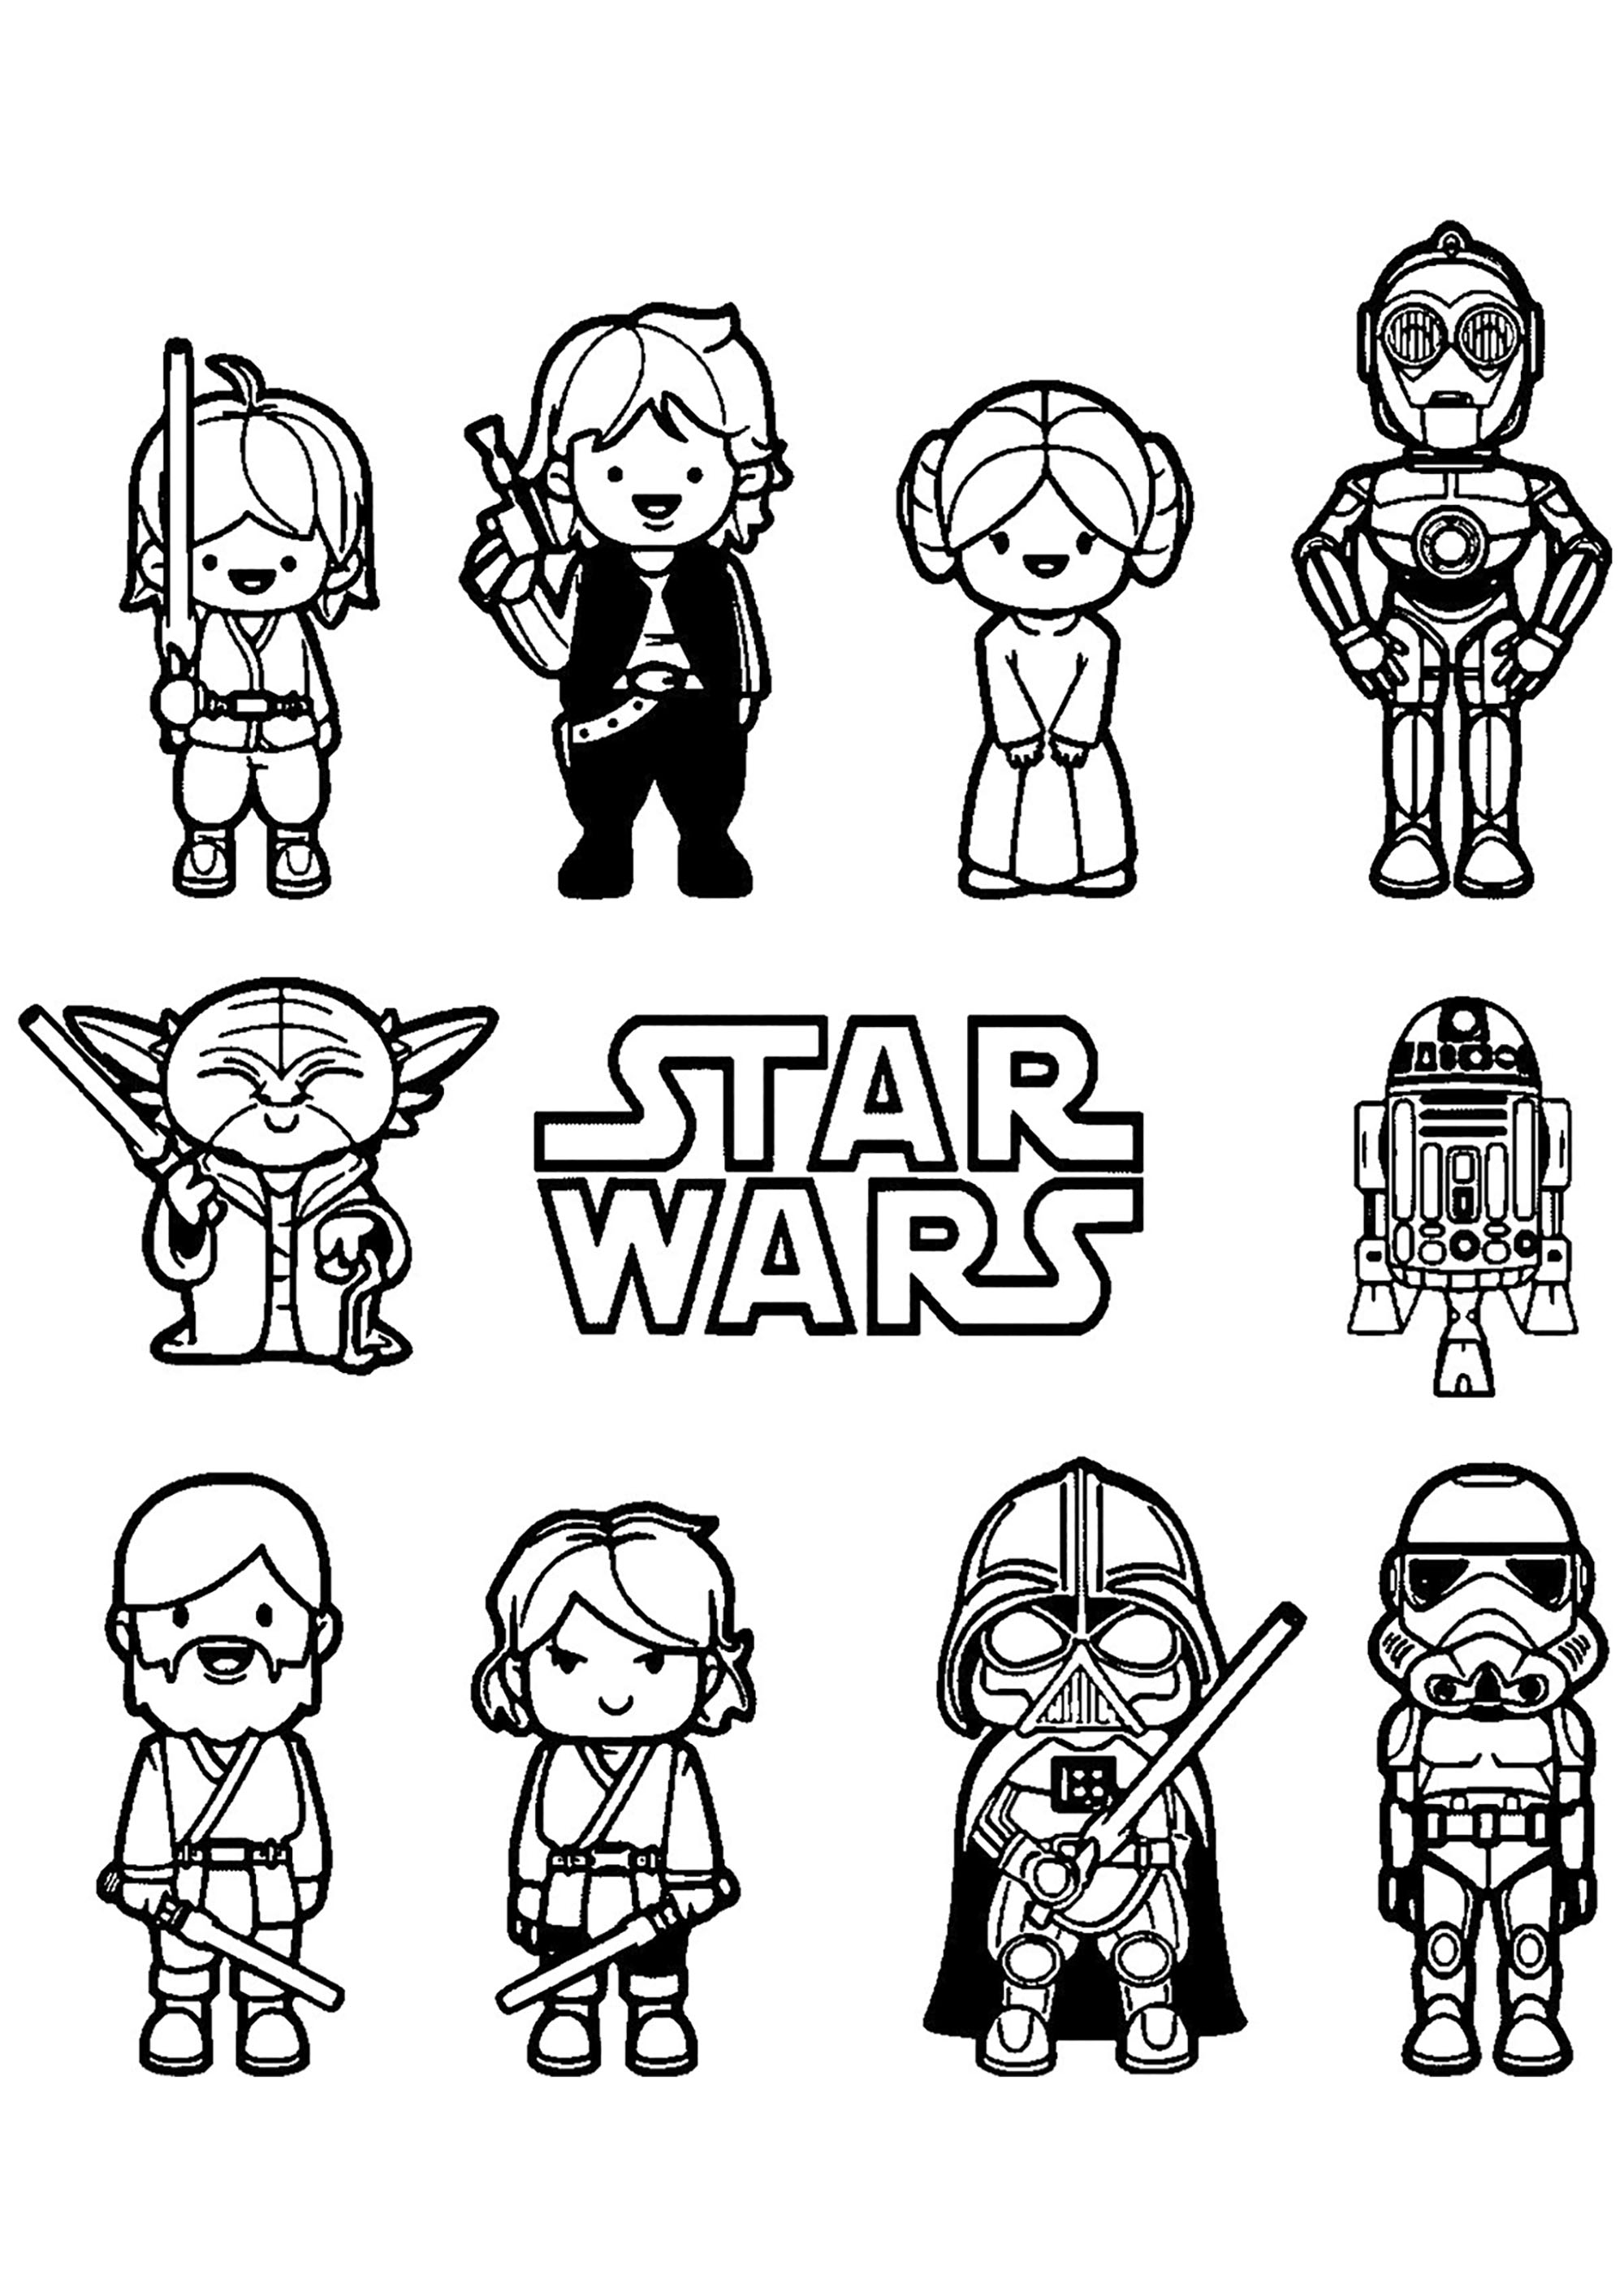 star wars coloring pages to print star wars coloring pages the force awakens coloring pages wars coloring pages star print to